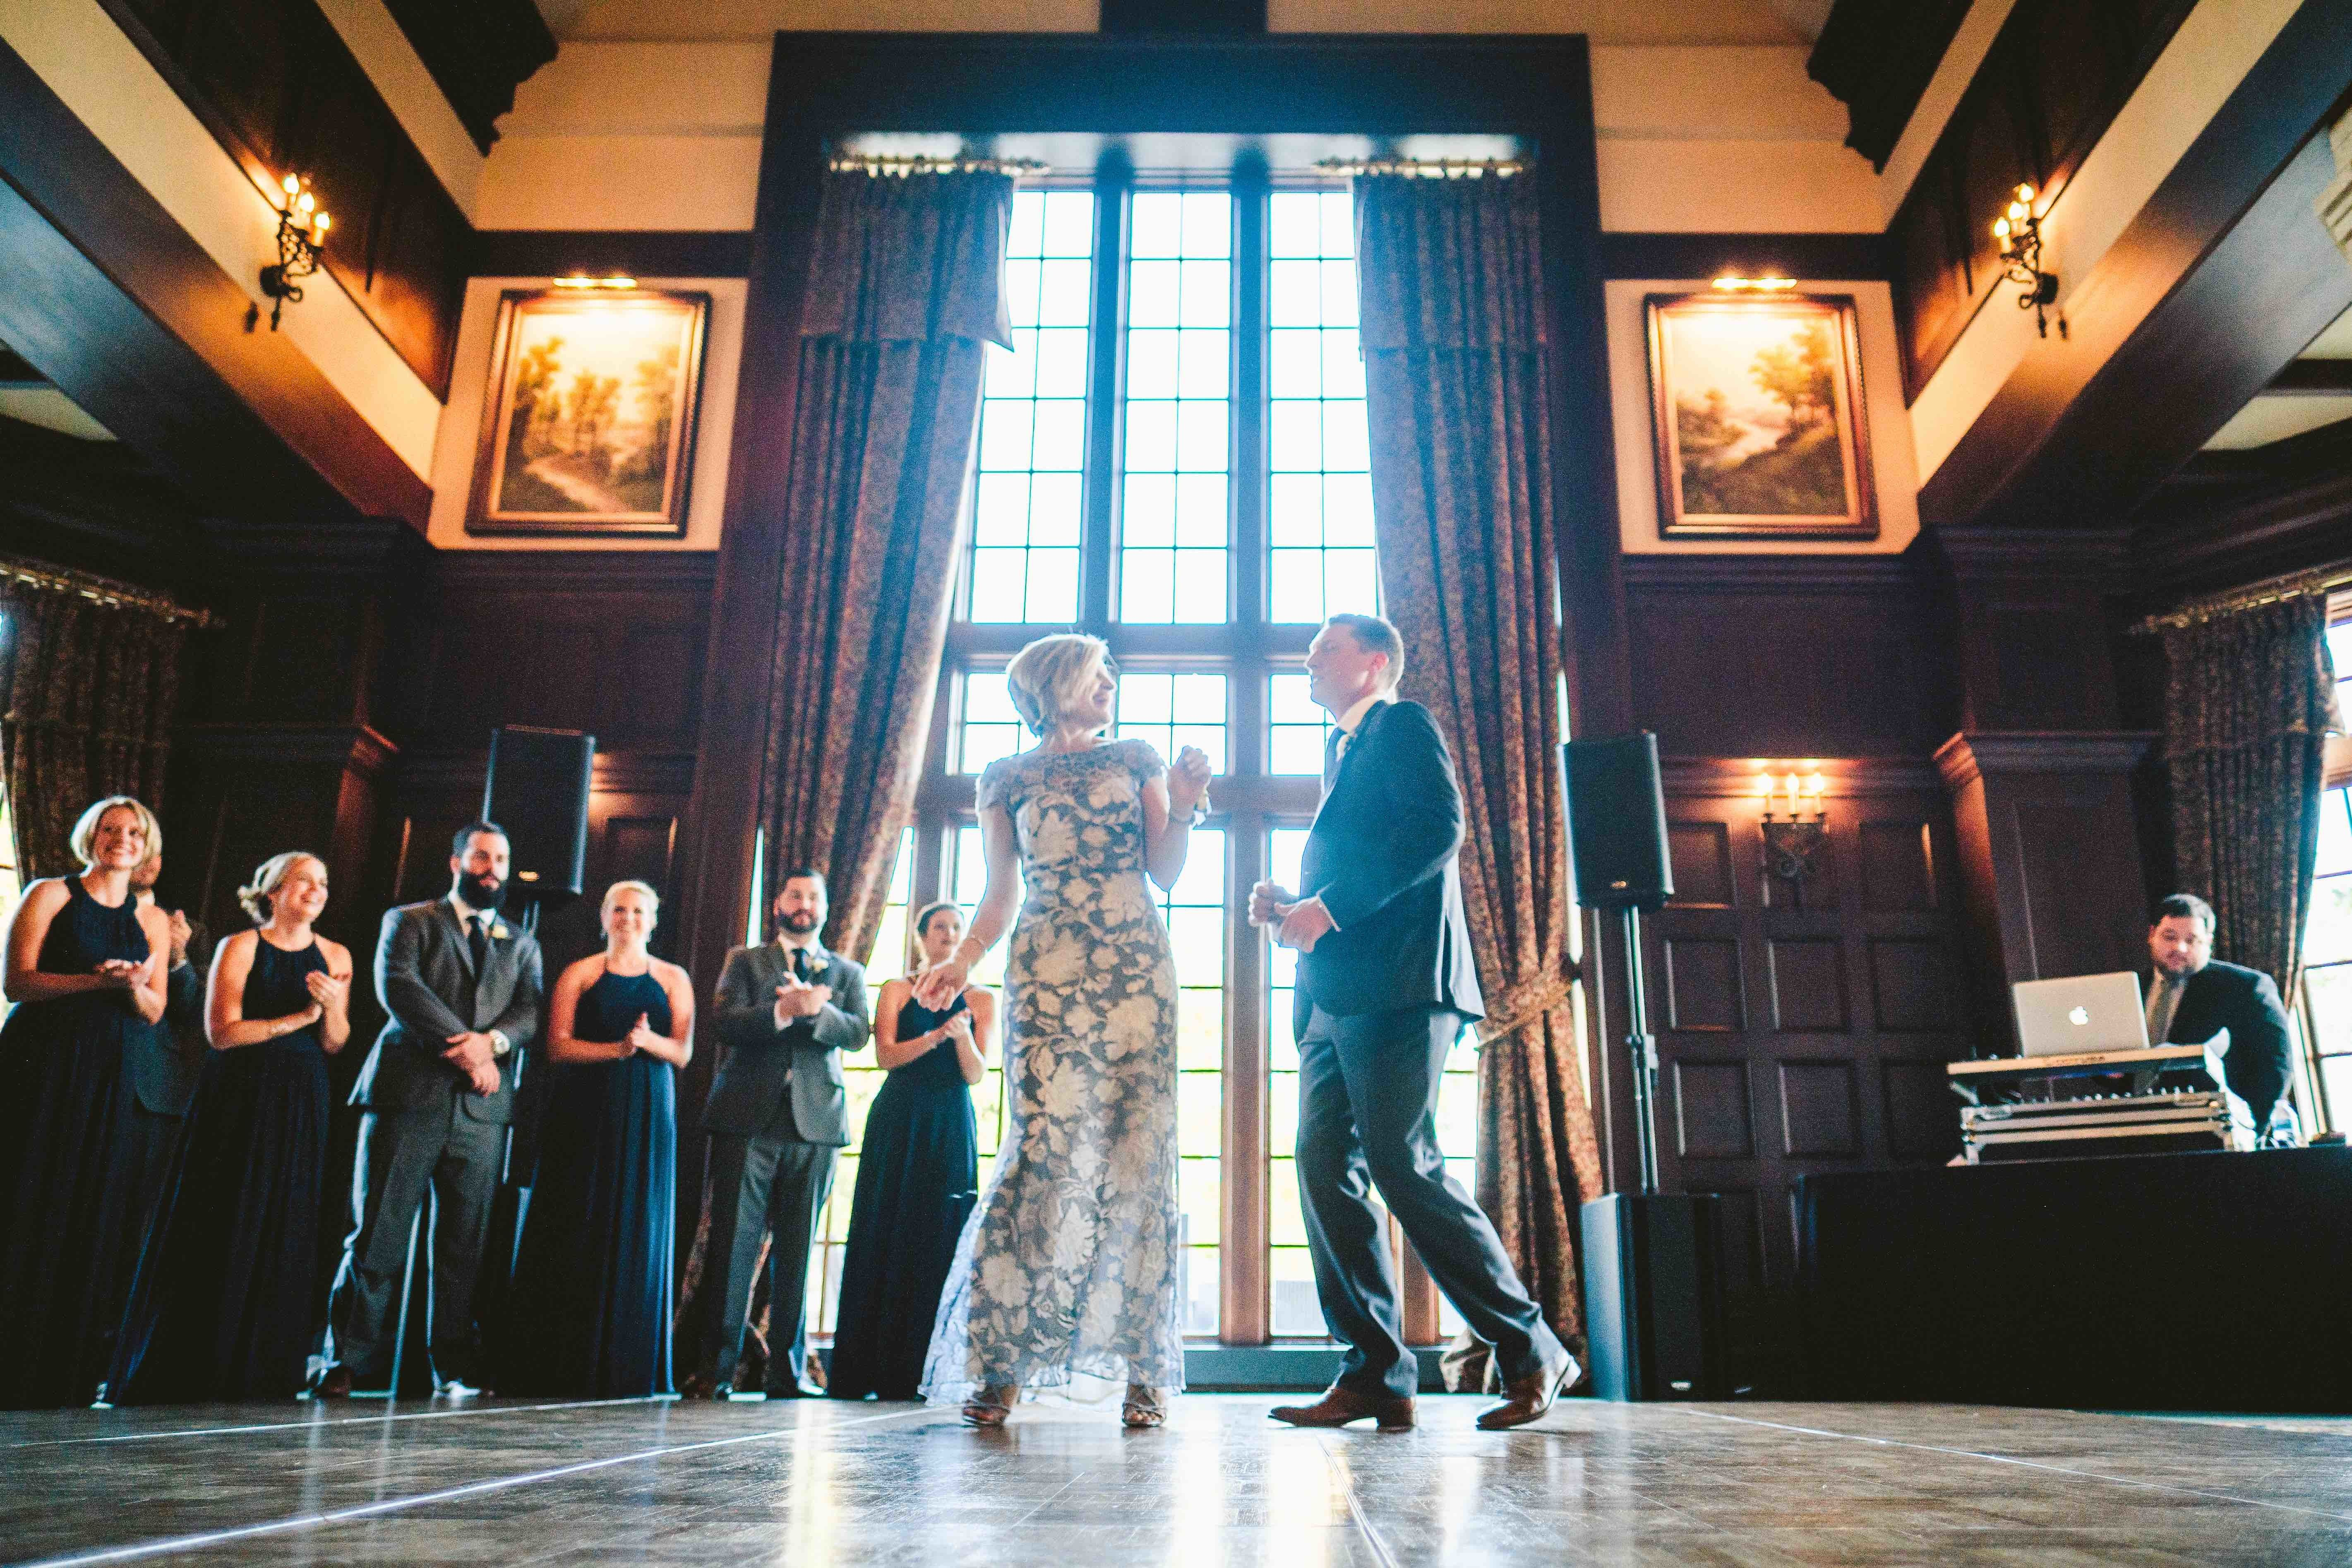 Find The Perfect Dj For Your Weddign Day With Charleston Wedding Dj And Bustld Vetted Vendor Bunn Dj Company Bun Dj Company Plan Your Wedding Wedding Music